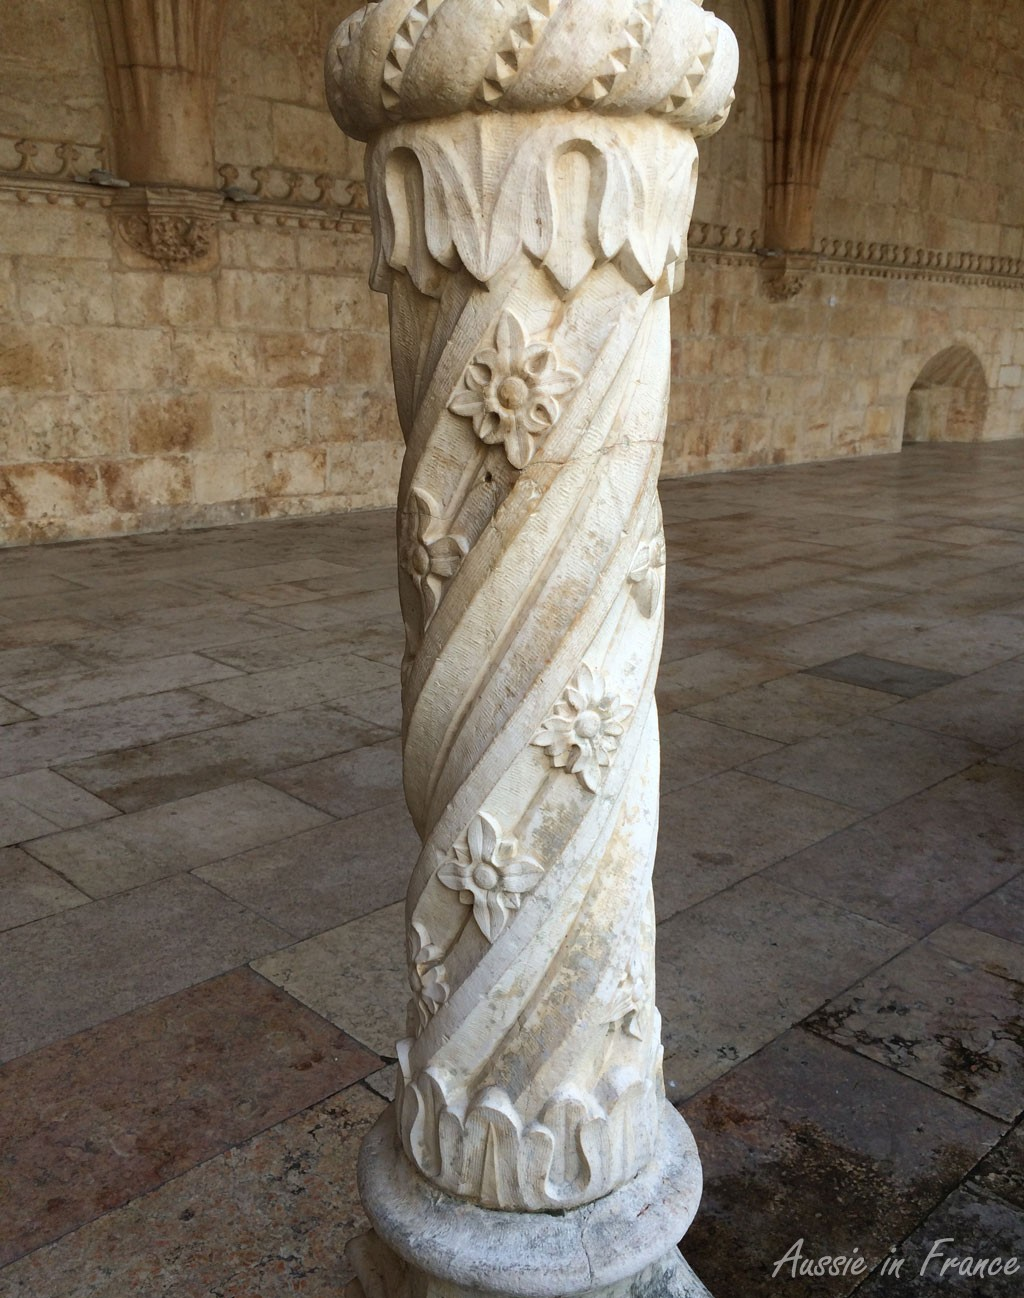 Just one of the beautiful columns